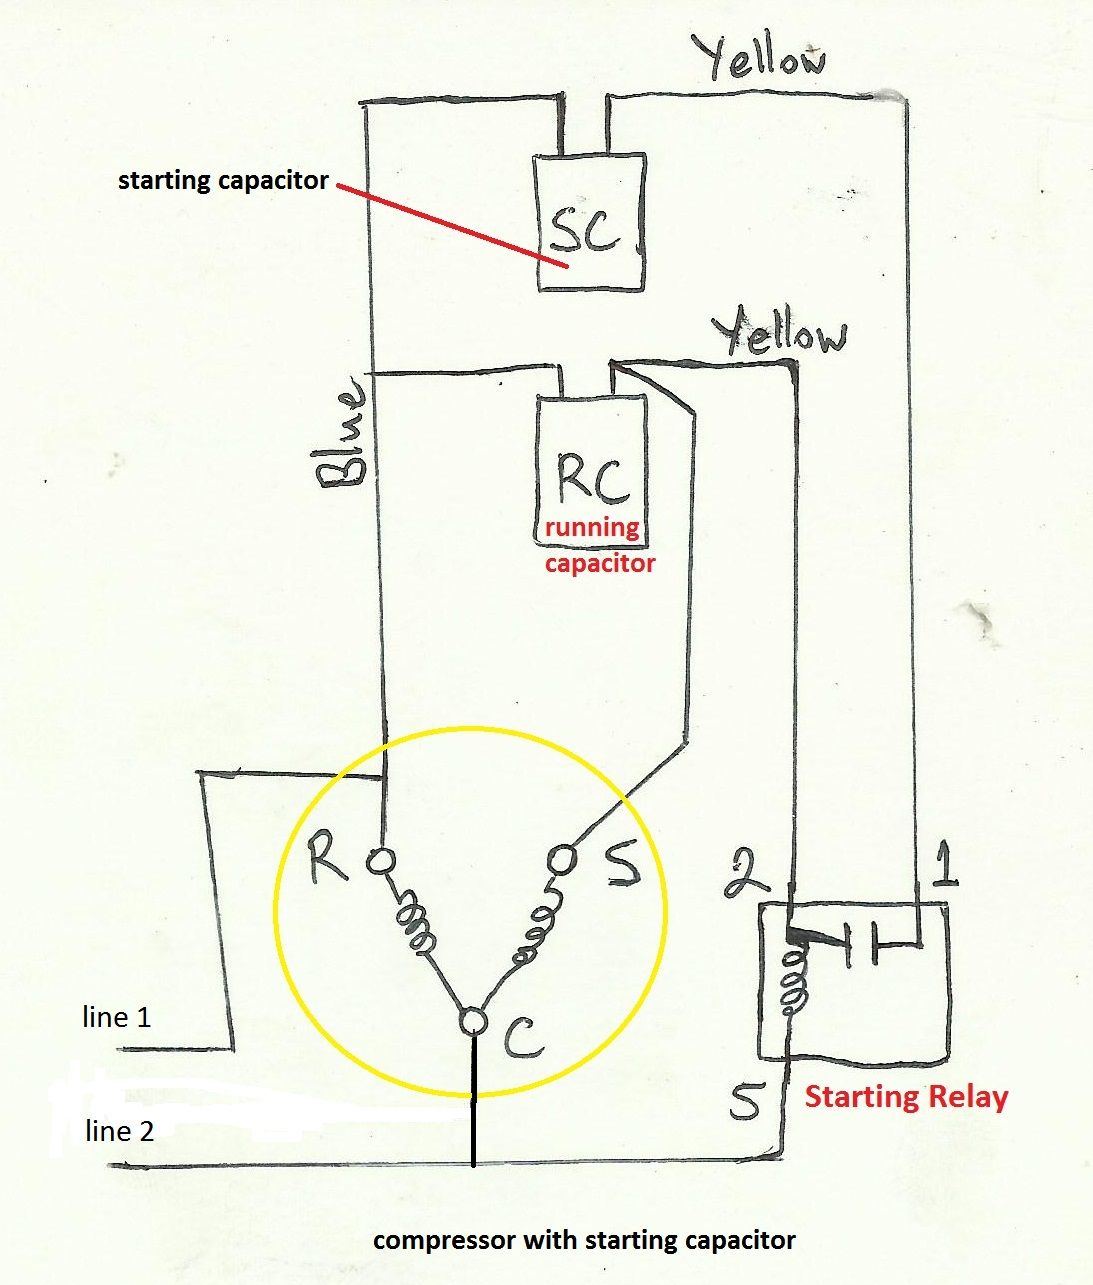 electric motor capacitor wiring diagram Collection-Air pressor Capacitor Wiring Diagram Before you call a AC repair man visit my blog for some tips on how to save thousands in ac repairs 2-h